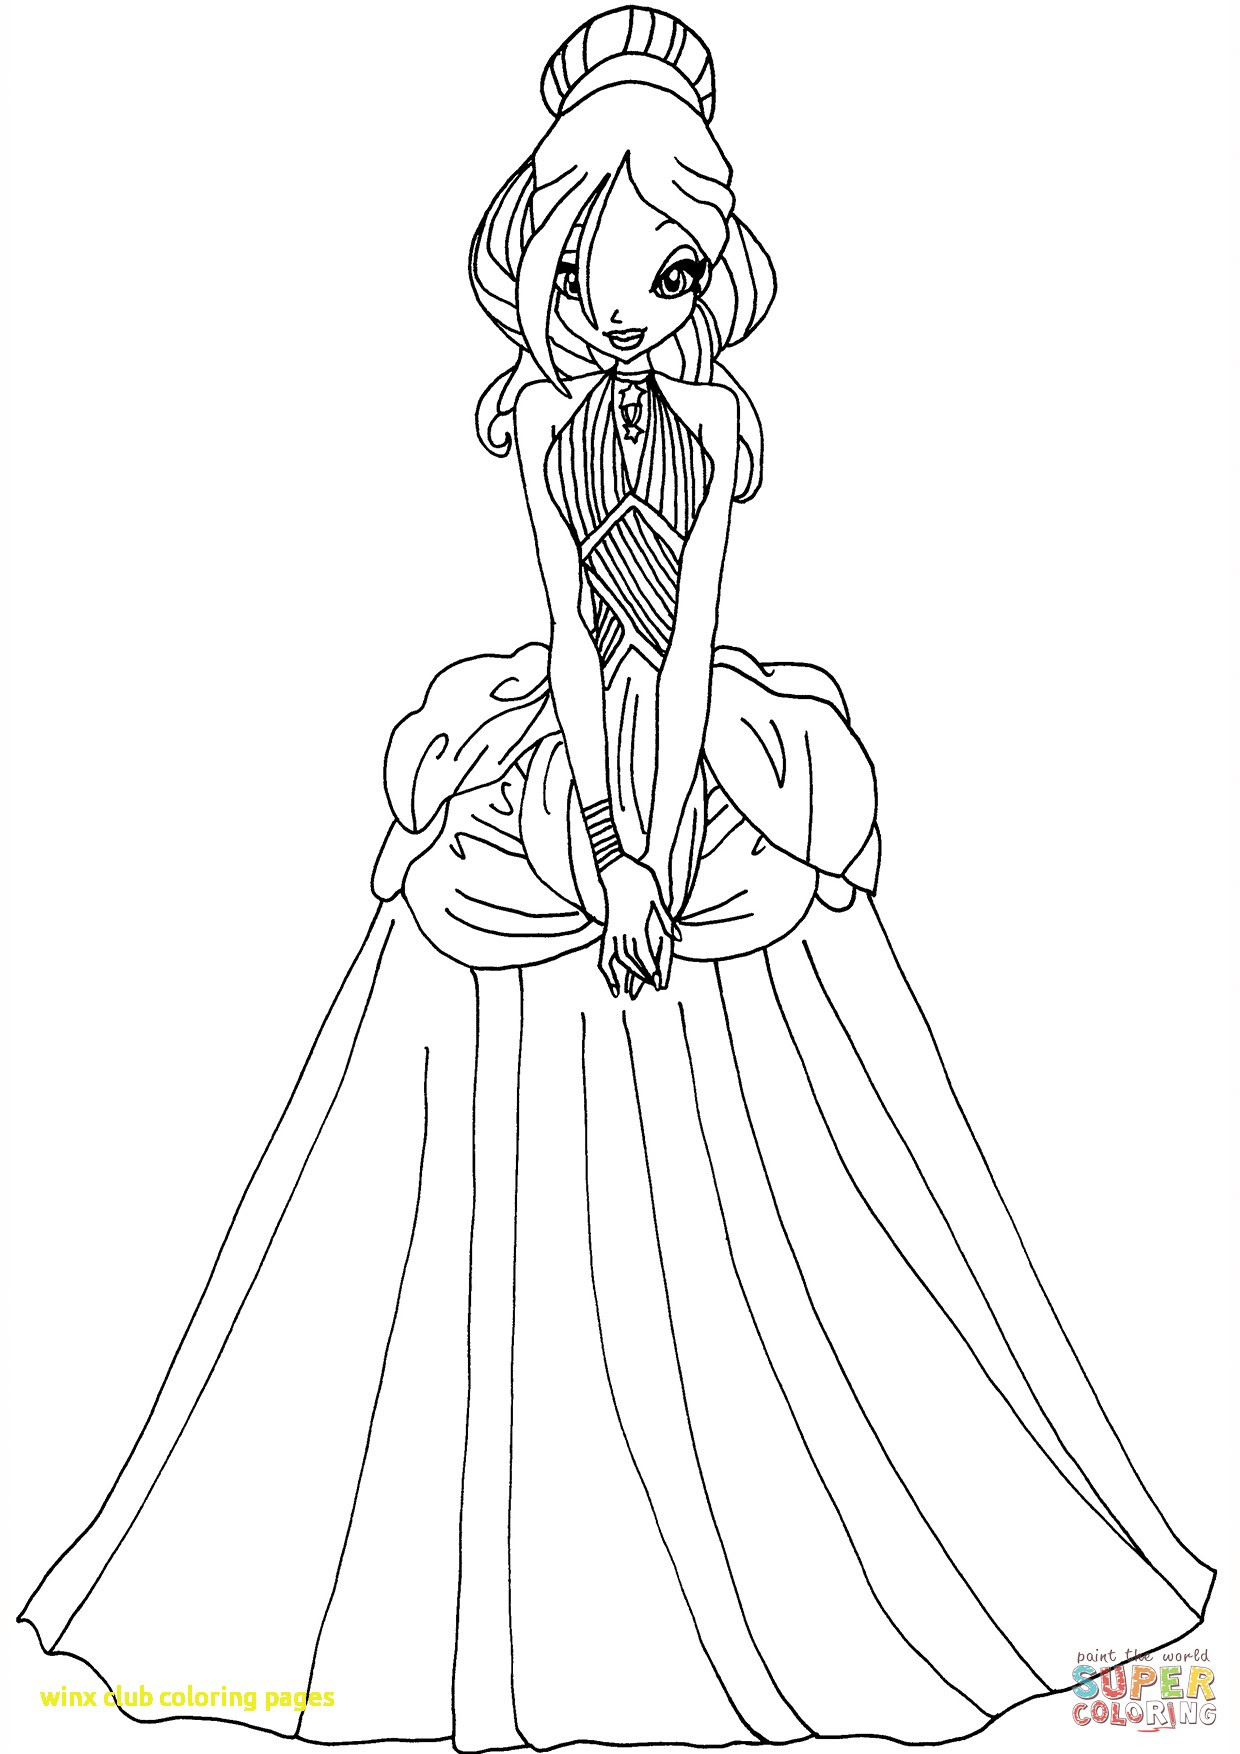 Winx Club Coloring Pages At Getdrawingscom Free For Personal Use